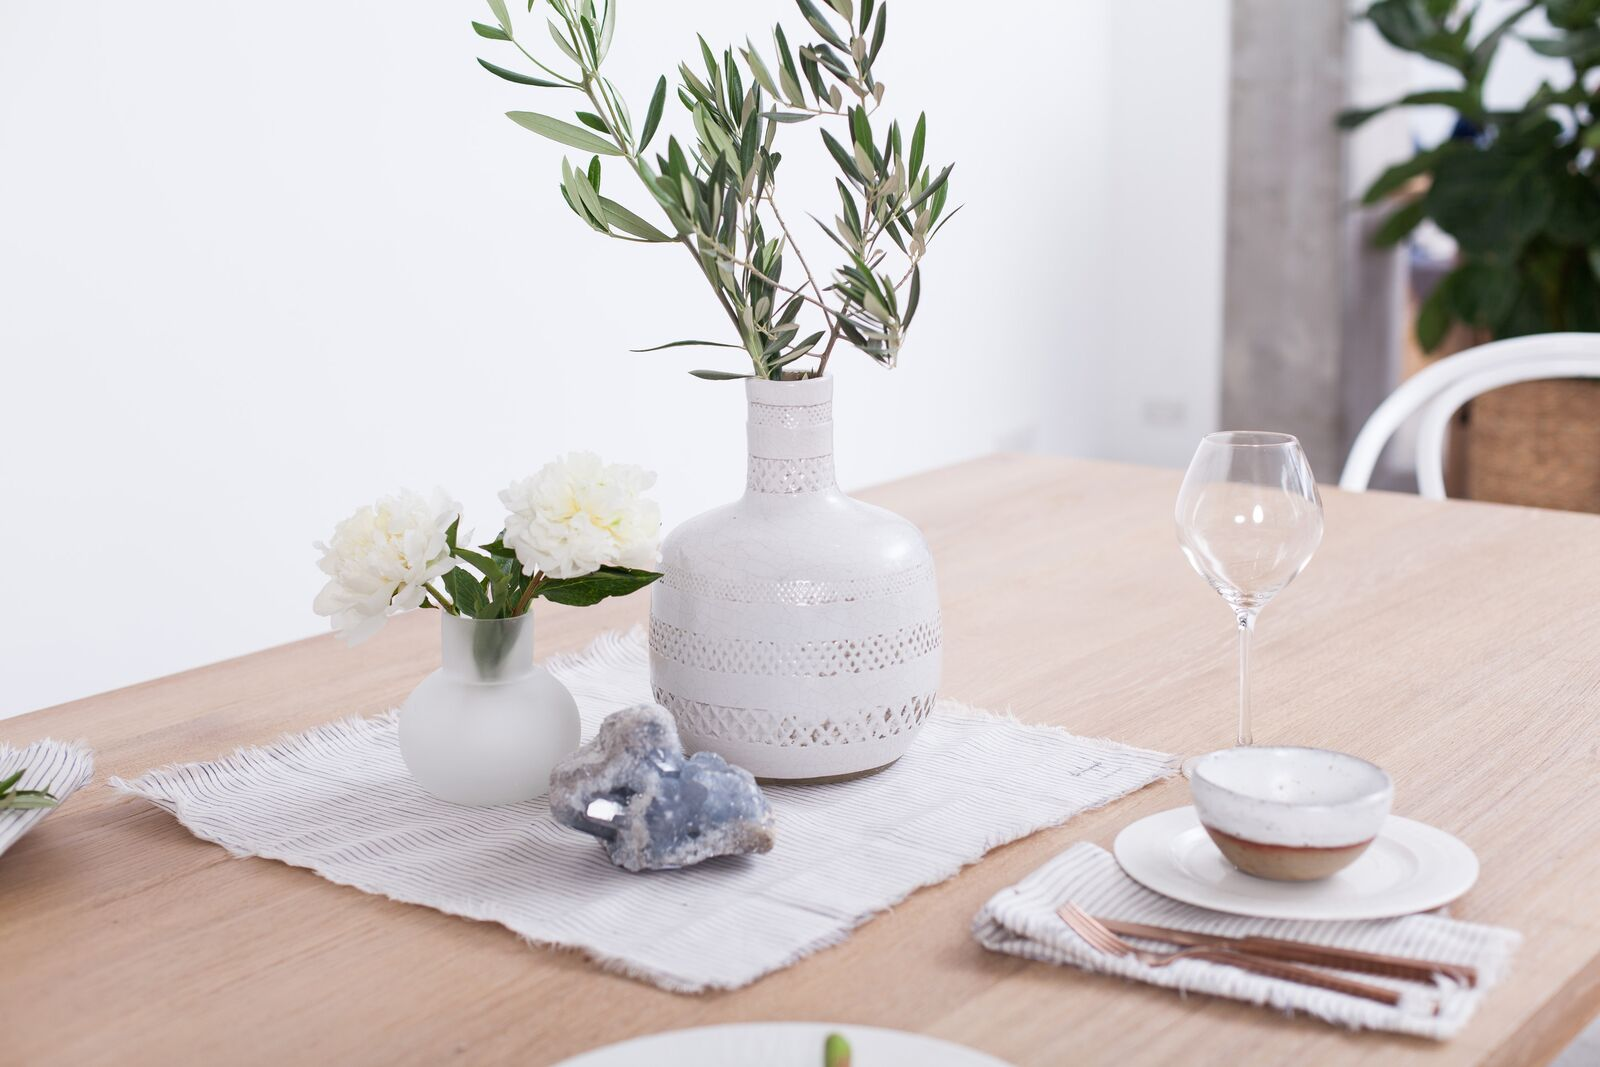 5 STYLING TIPS FOR SPRING DINING